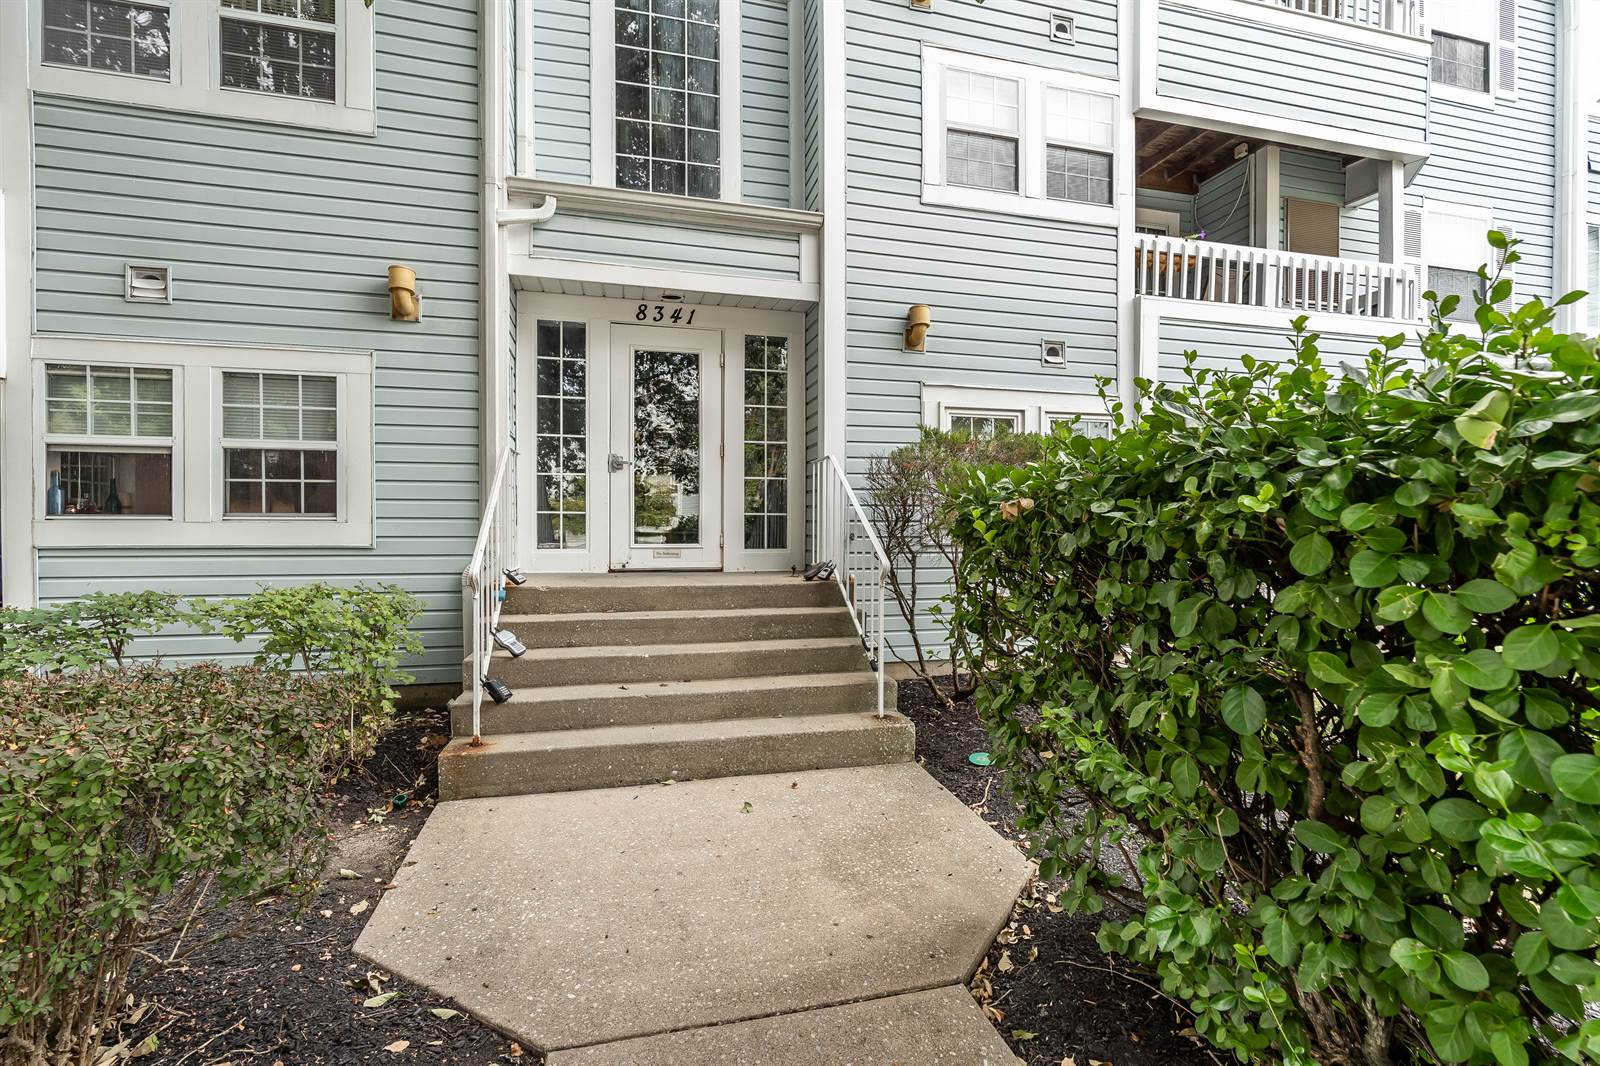 8341 Montgomery Run Road, #K, Ellicott City, MD 21043